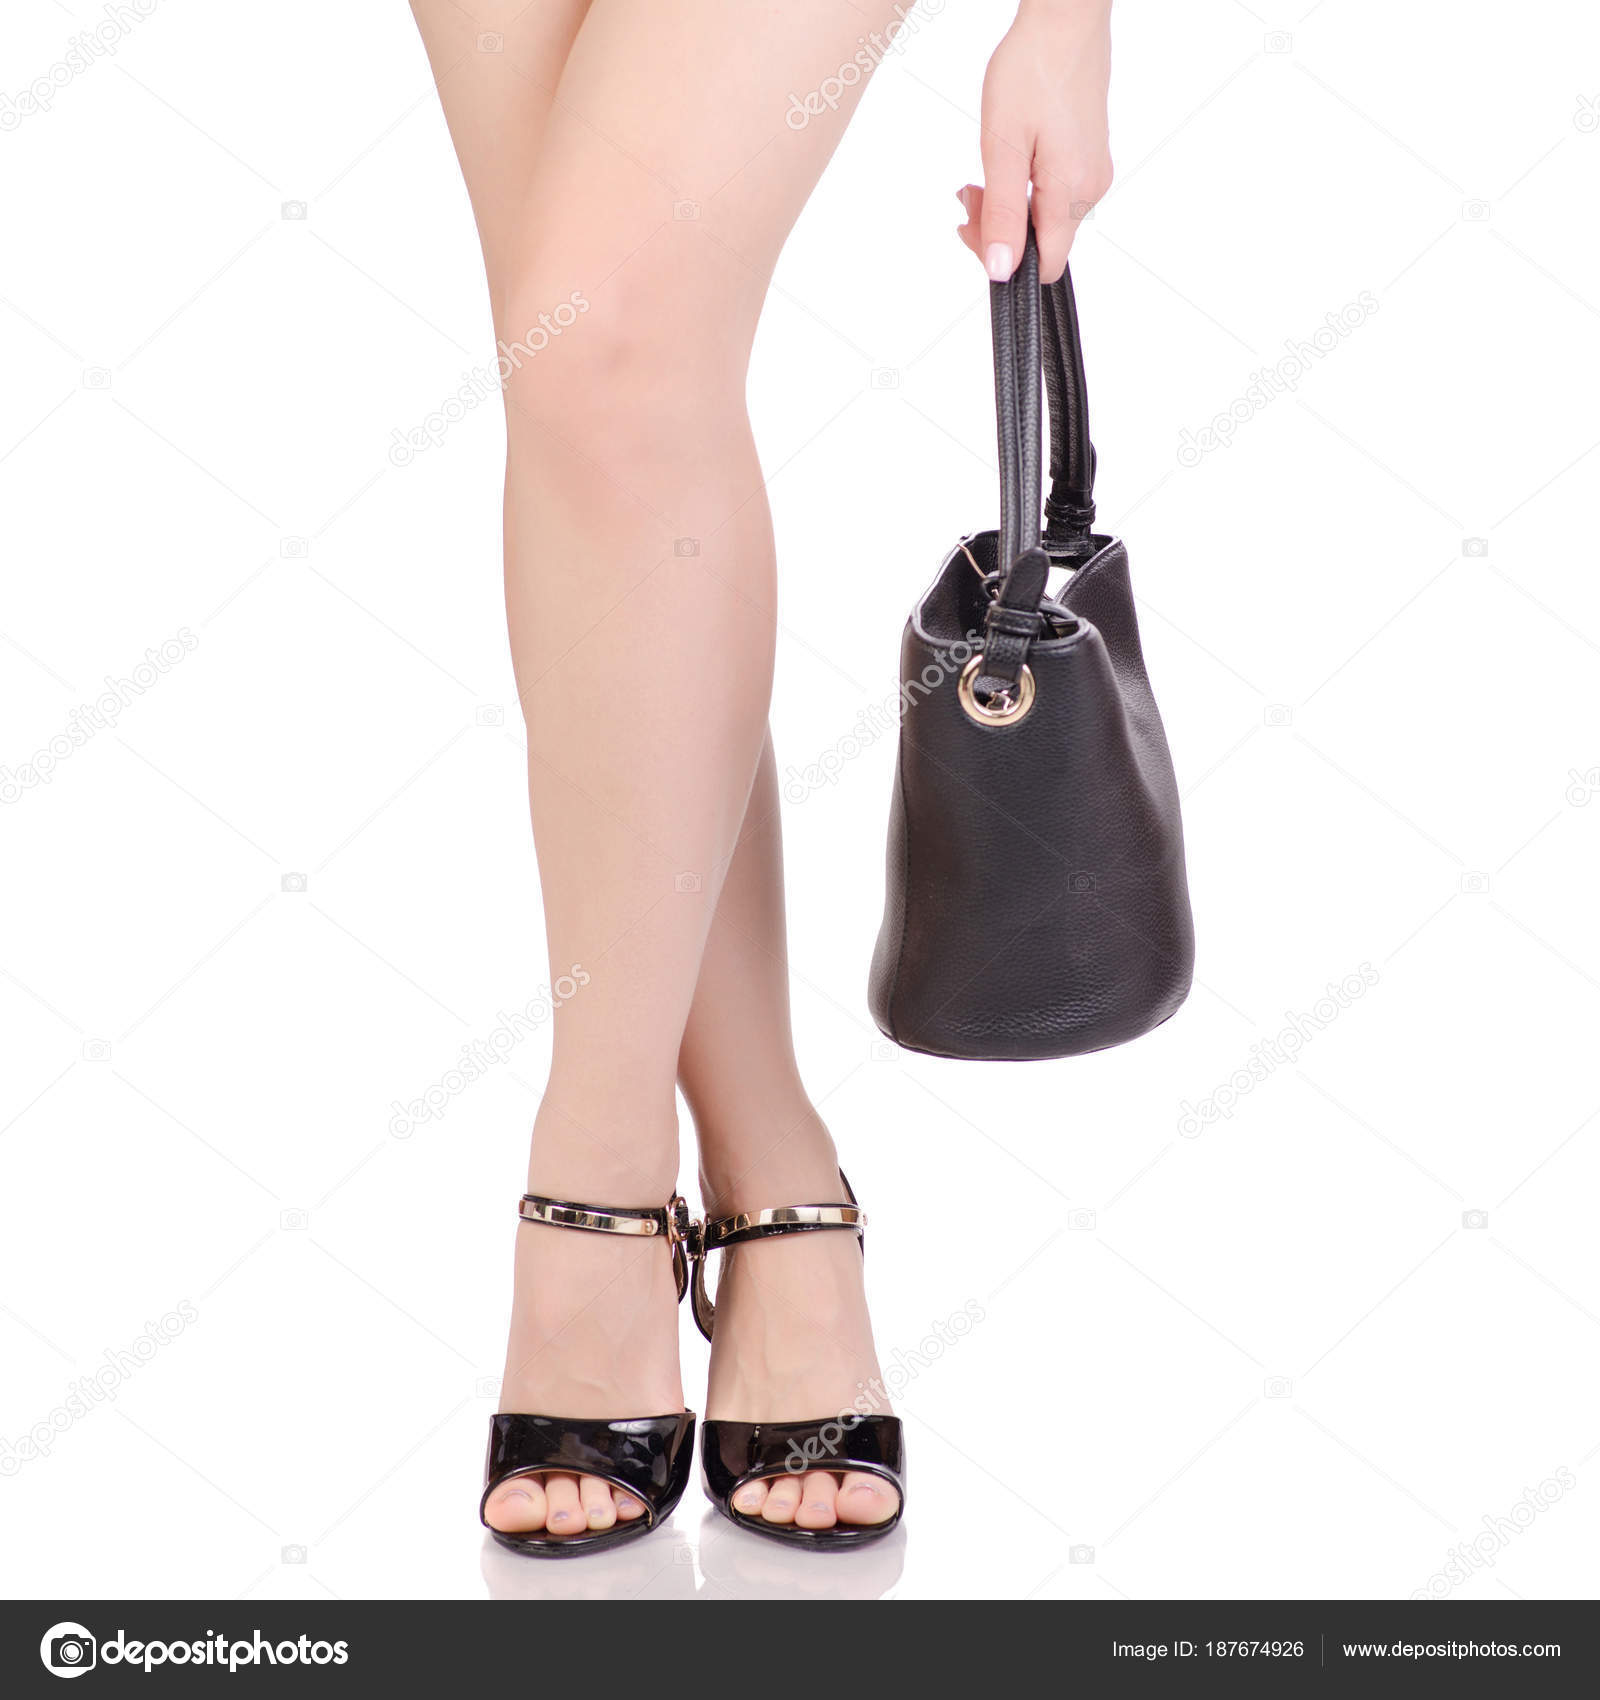 c5deadad1 Female legs in black lacquered shoes sandals and black leather handbag  beauty fashion buy shop on white background isolation — Photo by ...